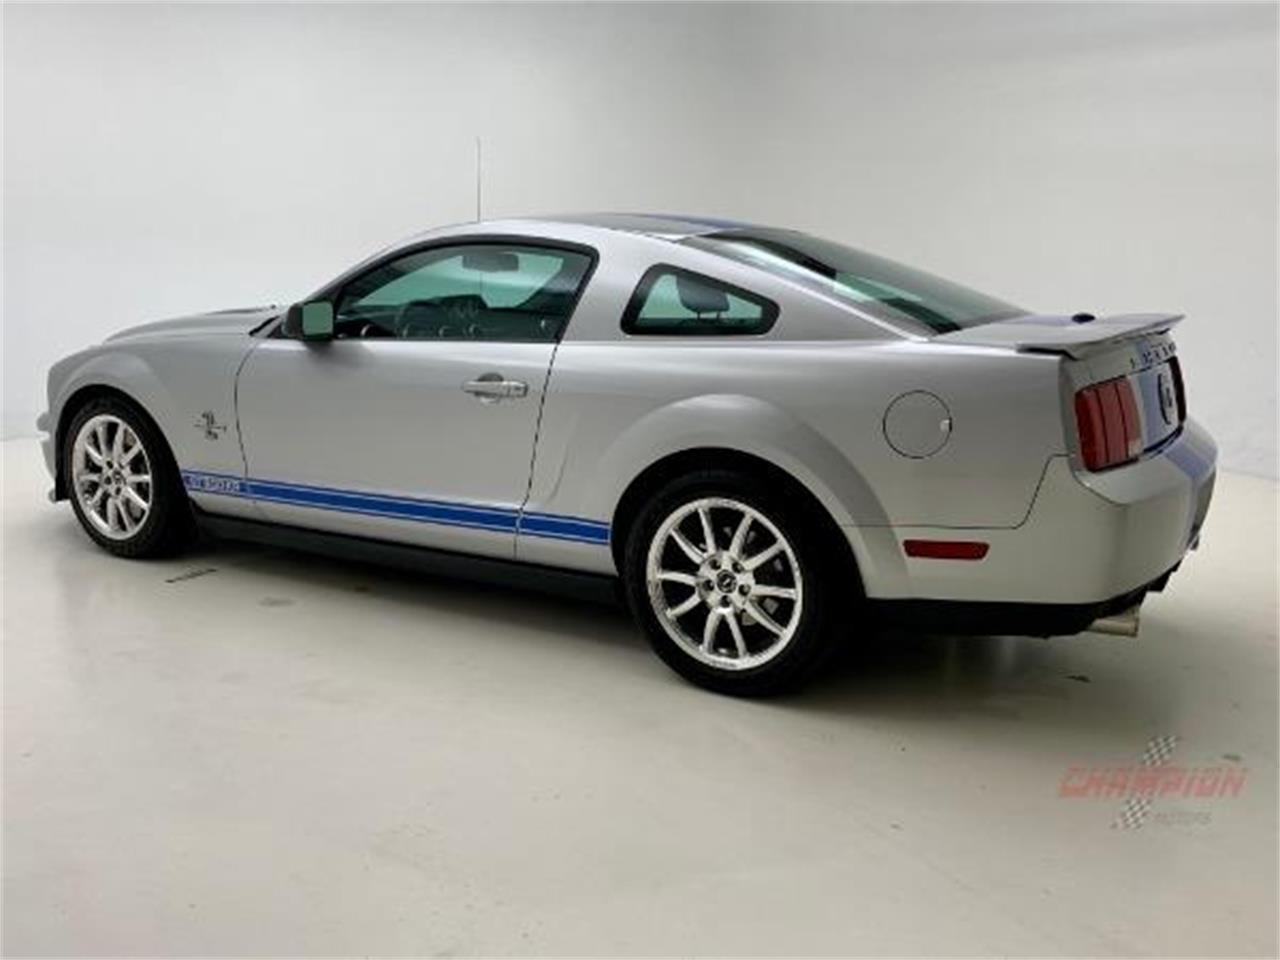 2009 Shelby Mustang for sale in Syosset, NY – photo 12